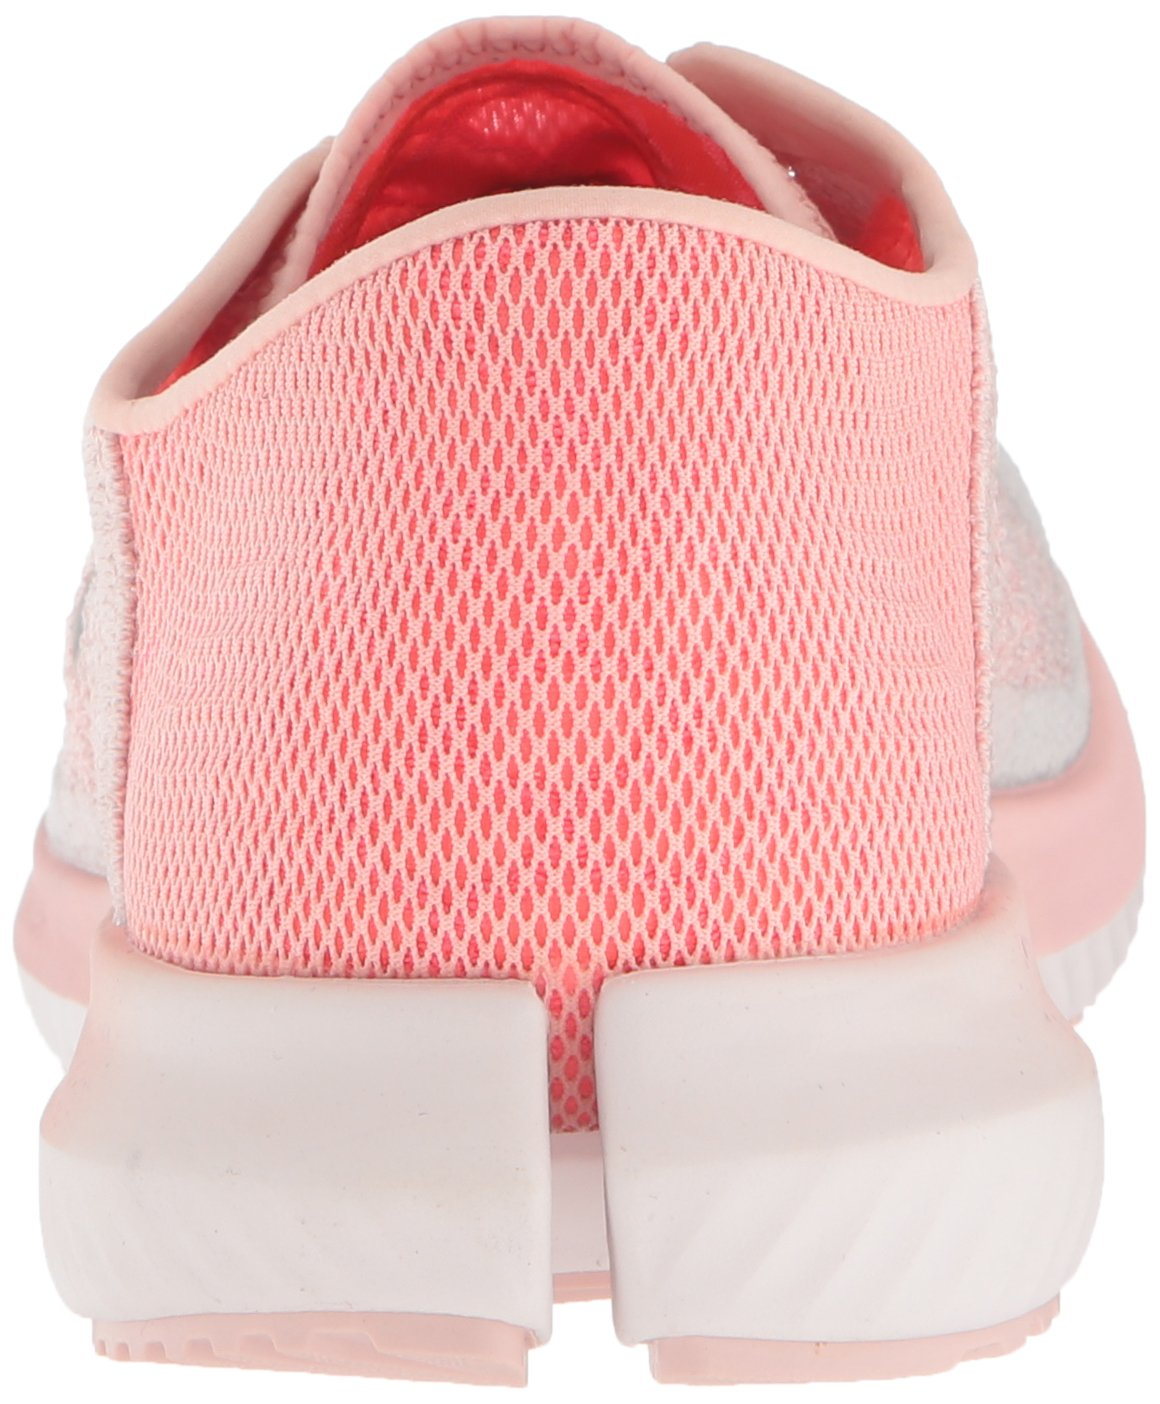 Under Armour Women's Threadborne 11 Blur Running Shoe B0775YFGQQ 11 Threadborne M US|Flushed Pink (601)/After Burn 6c99b3